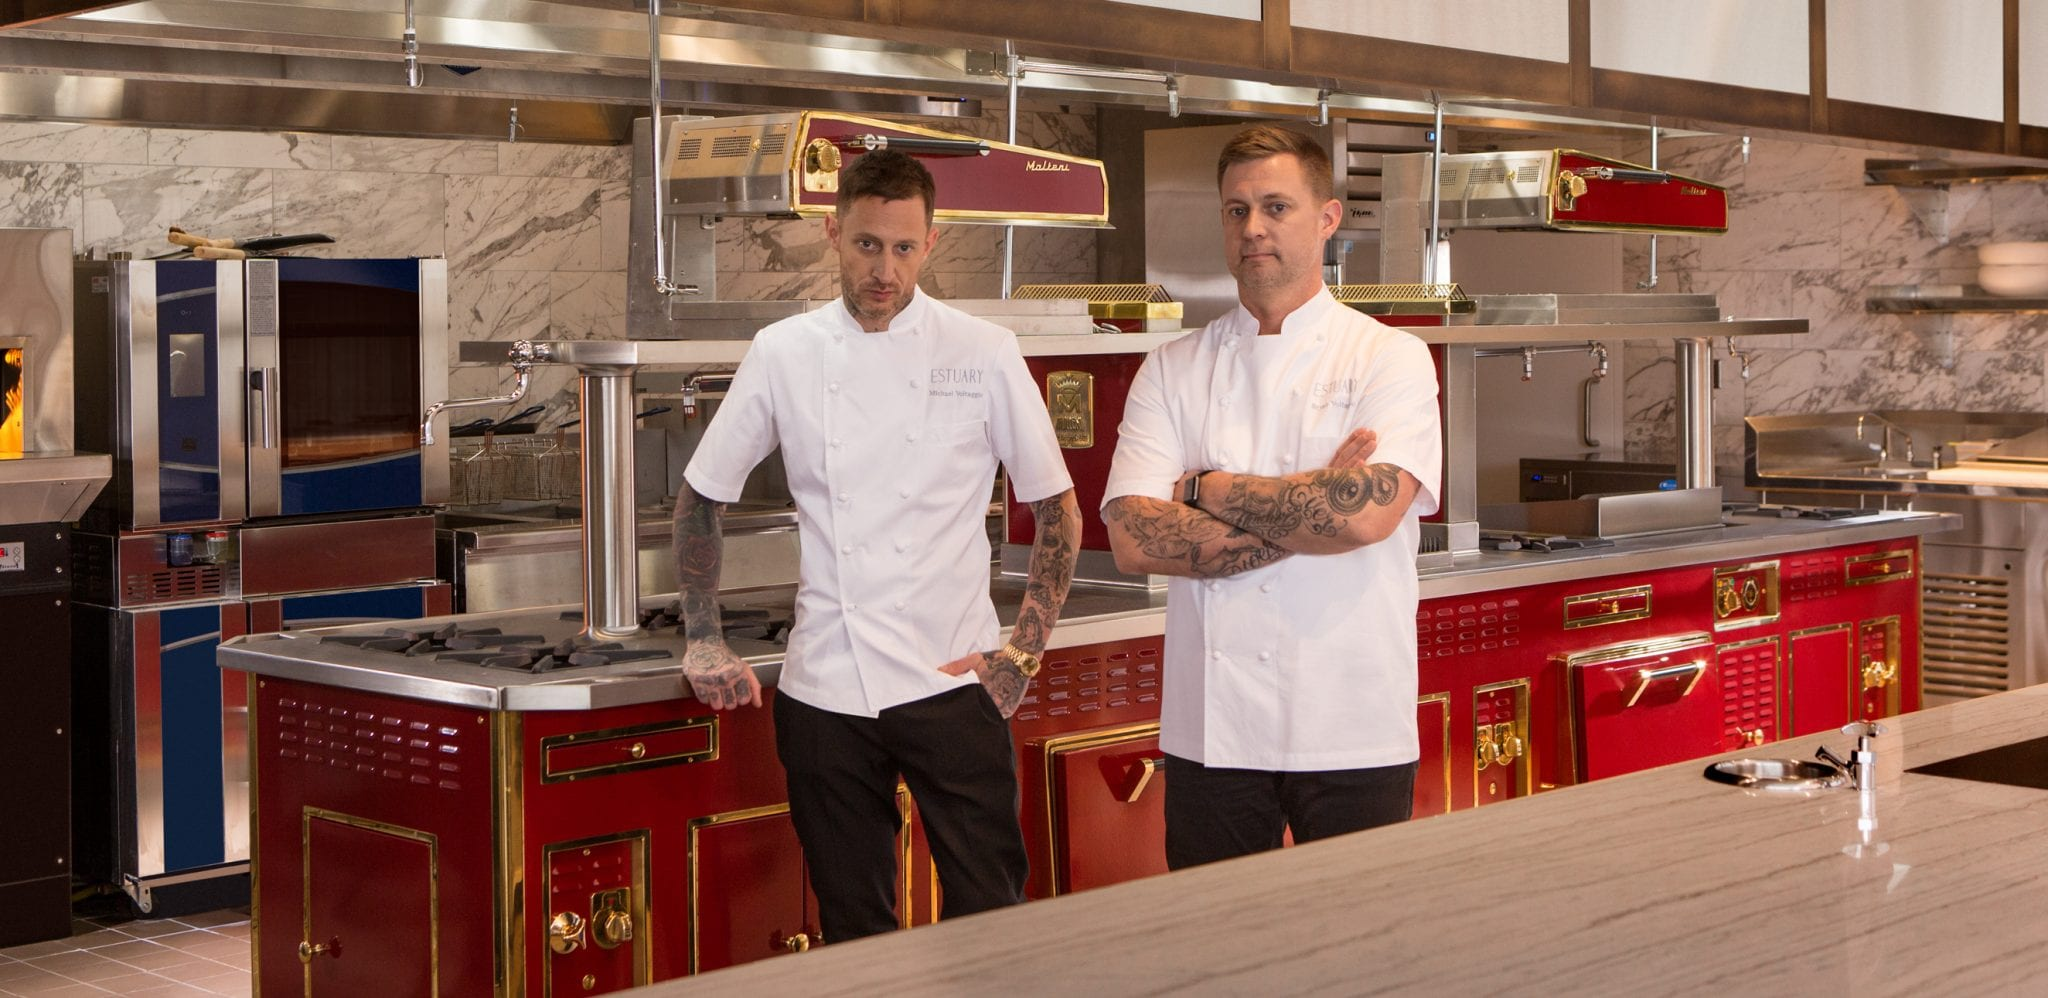 Explore Washington, DC with Chefs Bryan & Michael Voltaggio